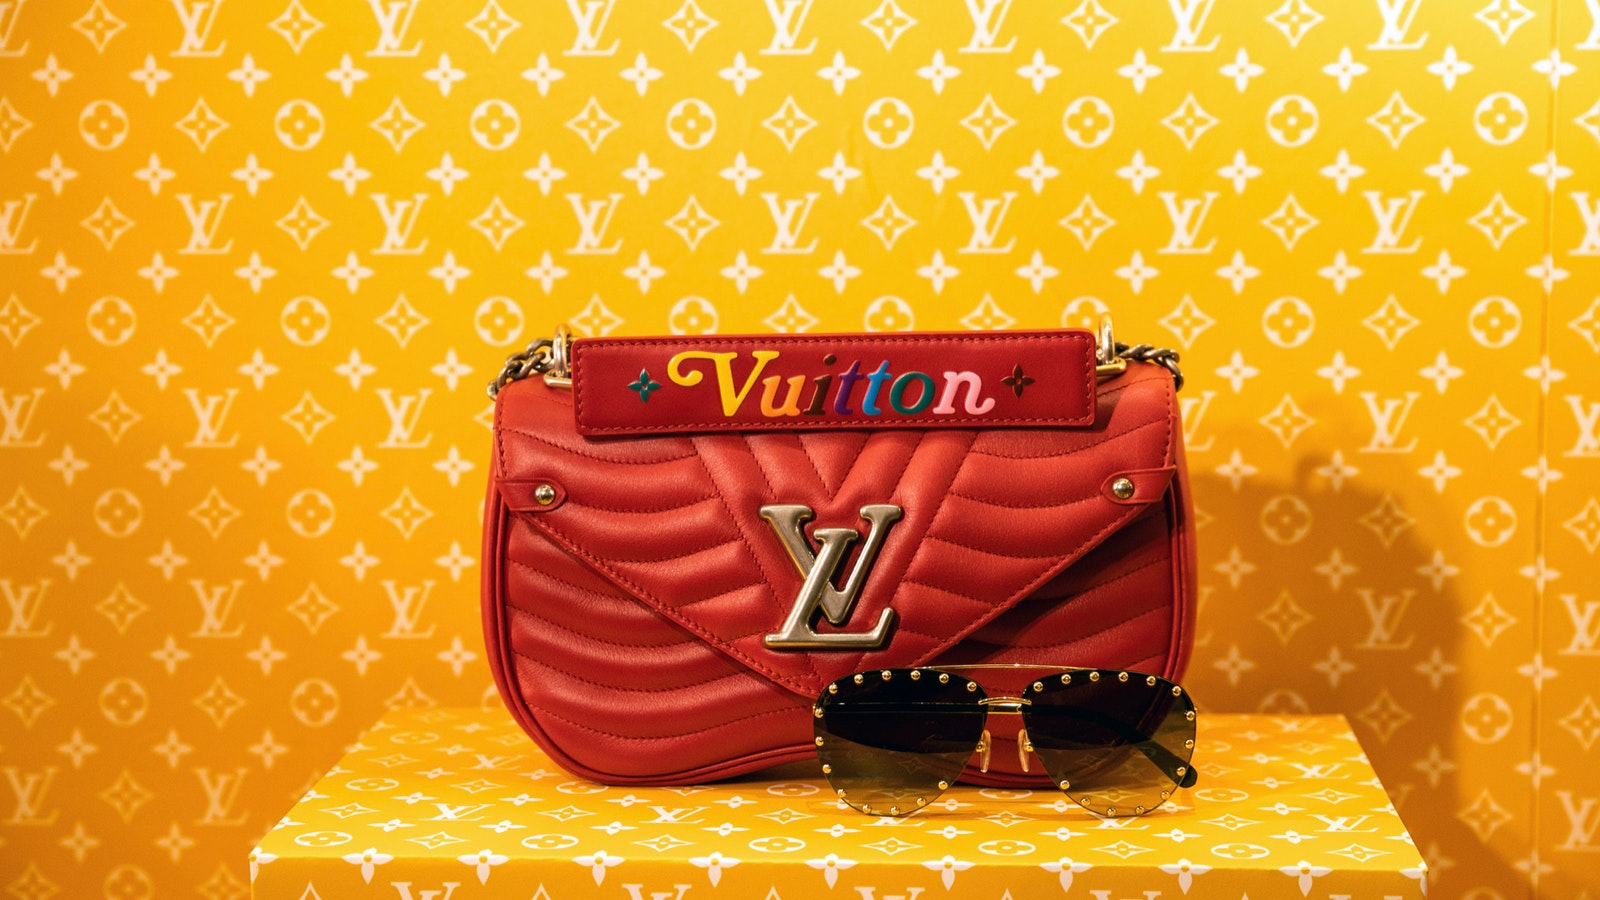 A Louis Vuitton handbag and sunglasses. Photo by Bloomberg